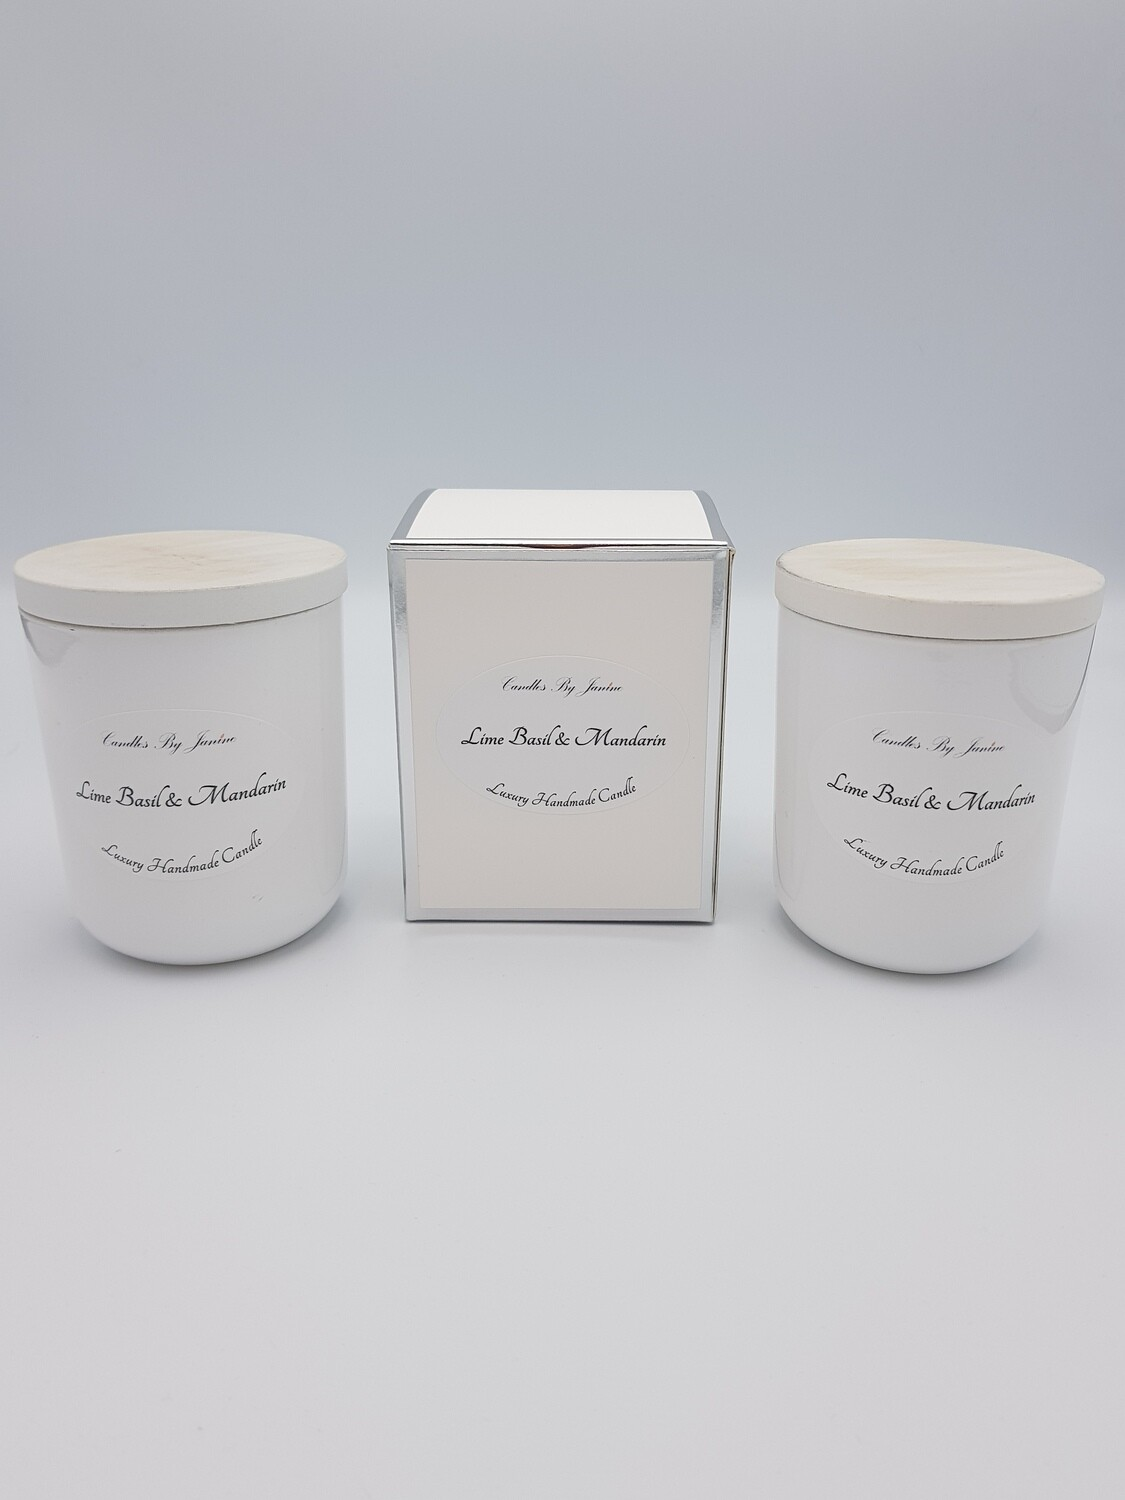 The Signature Candle